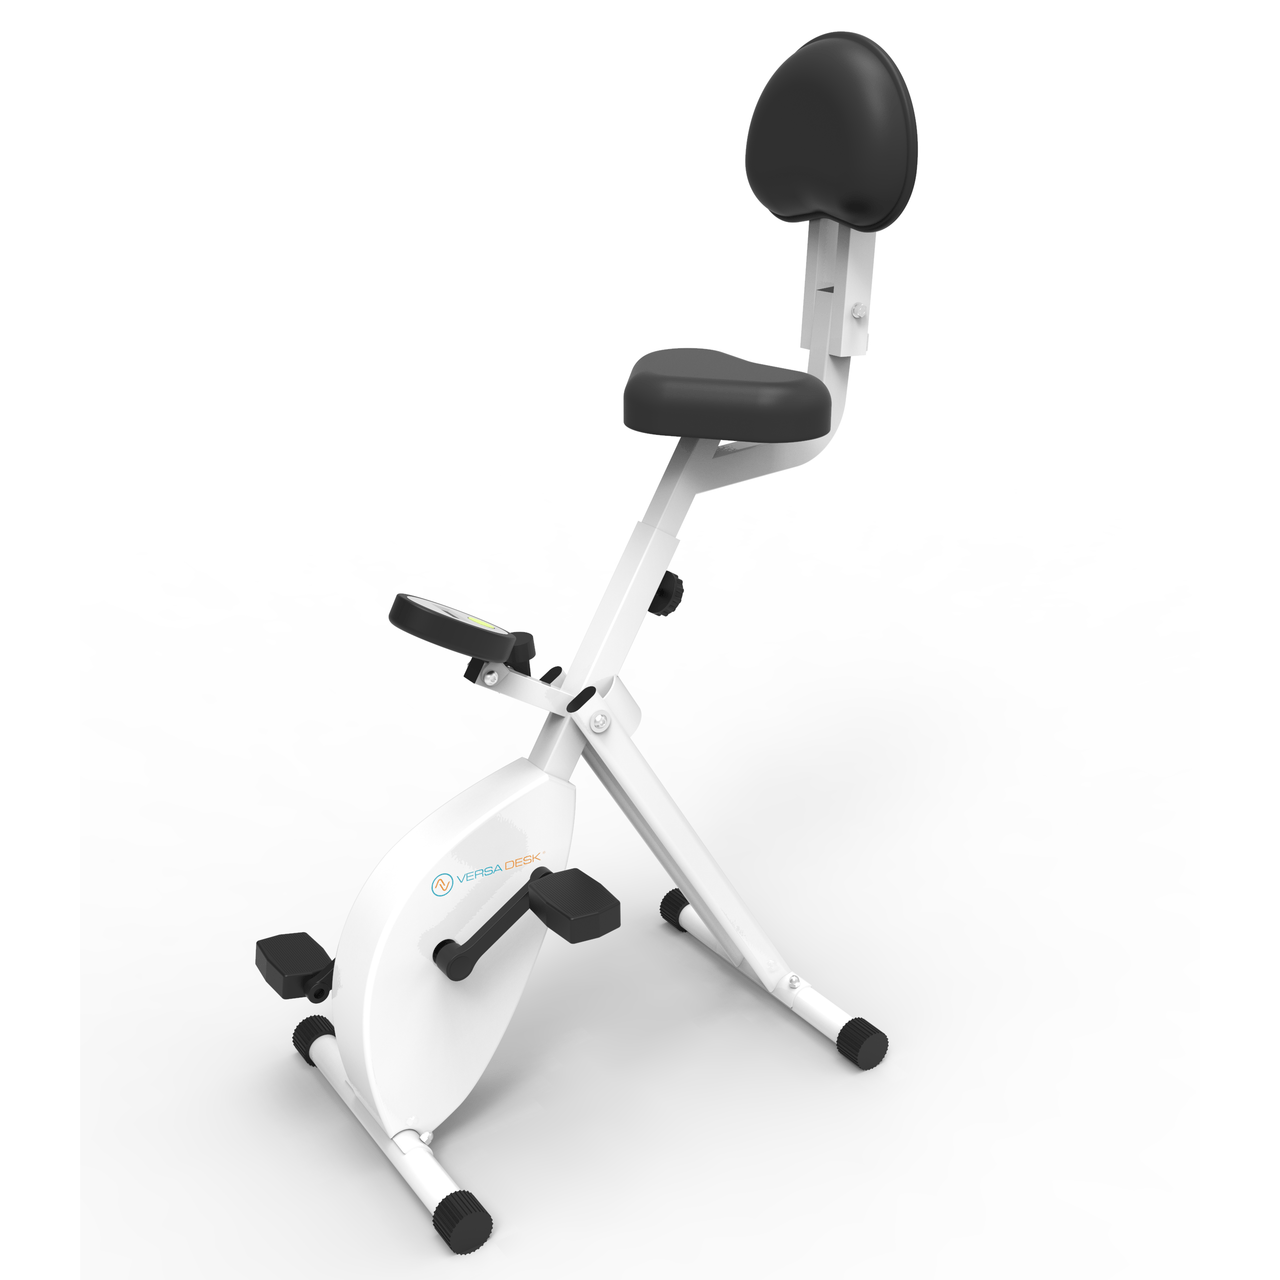 Versa Desk VersaDesk Seated Standing Desk Cycle Bike Desks